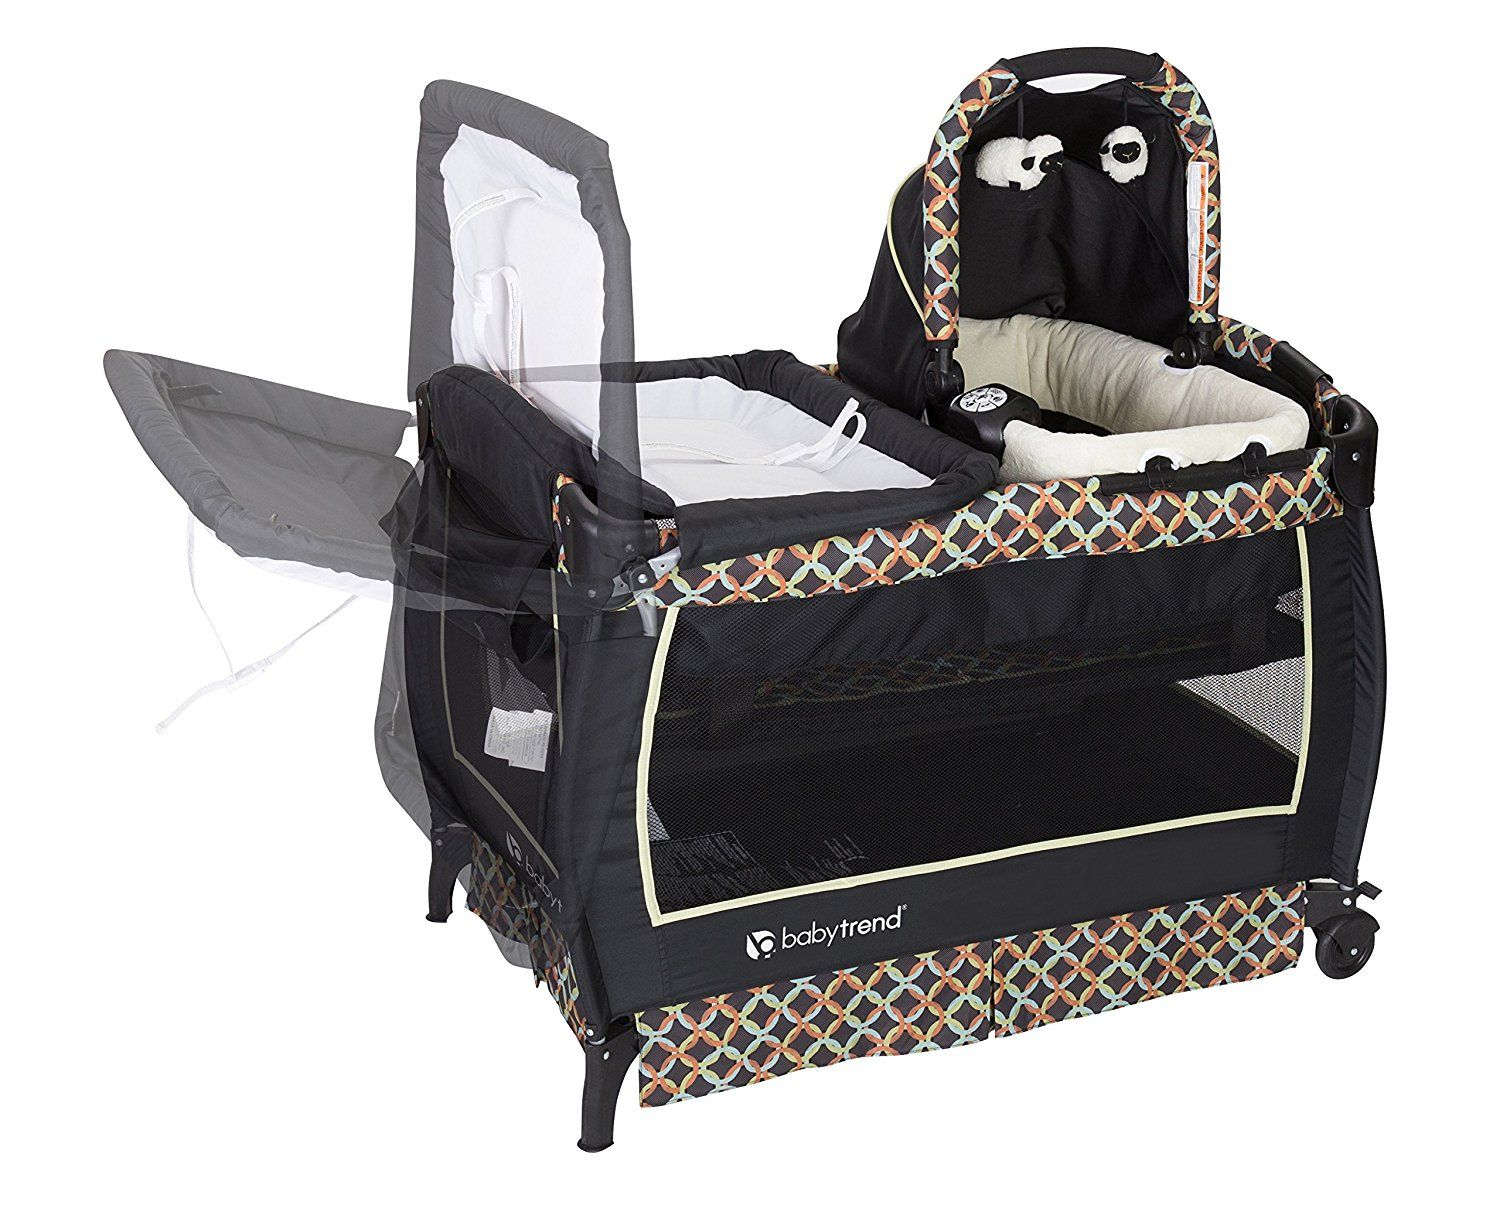 Twin Stroller Dream Amazon Baby Trend Twin Nursery Center Circle Tech